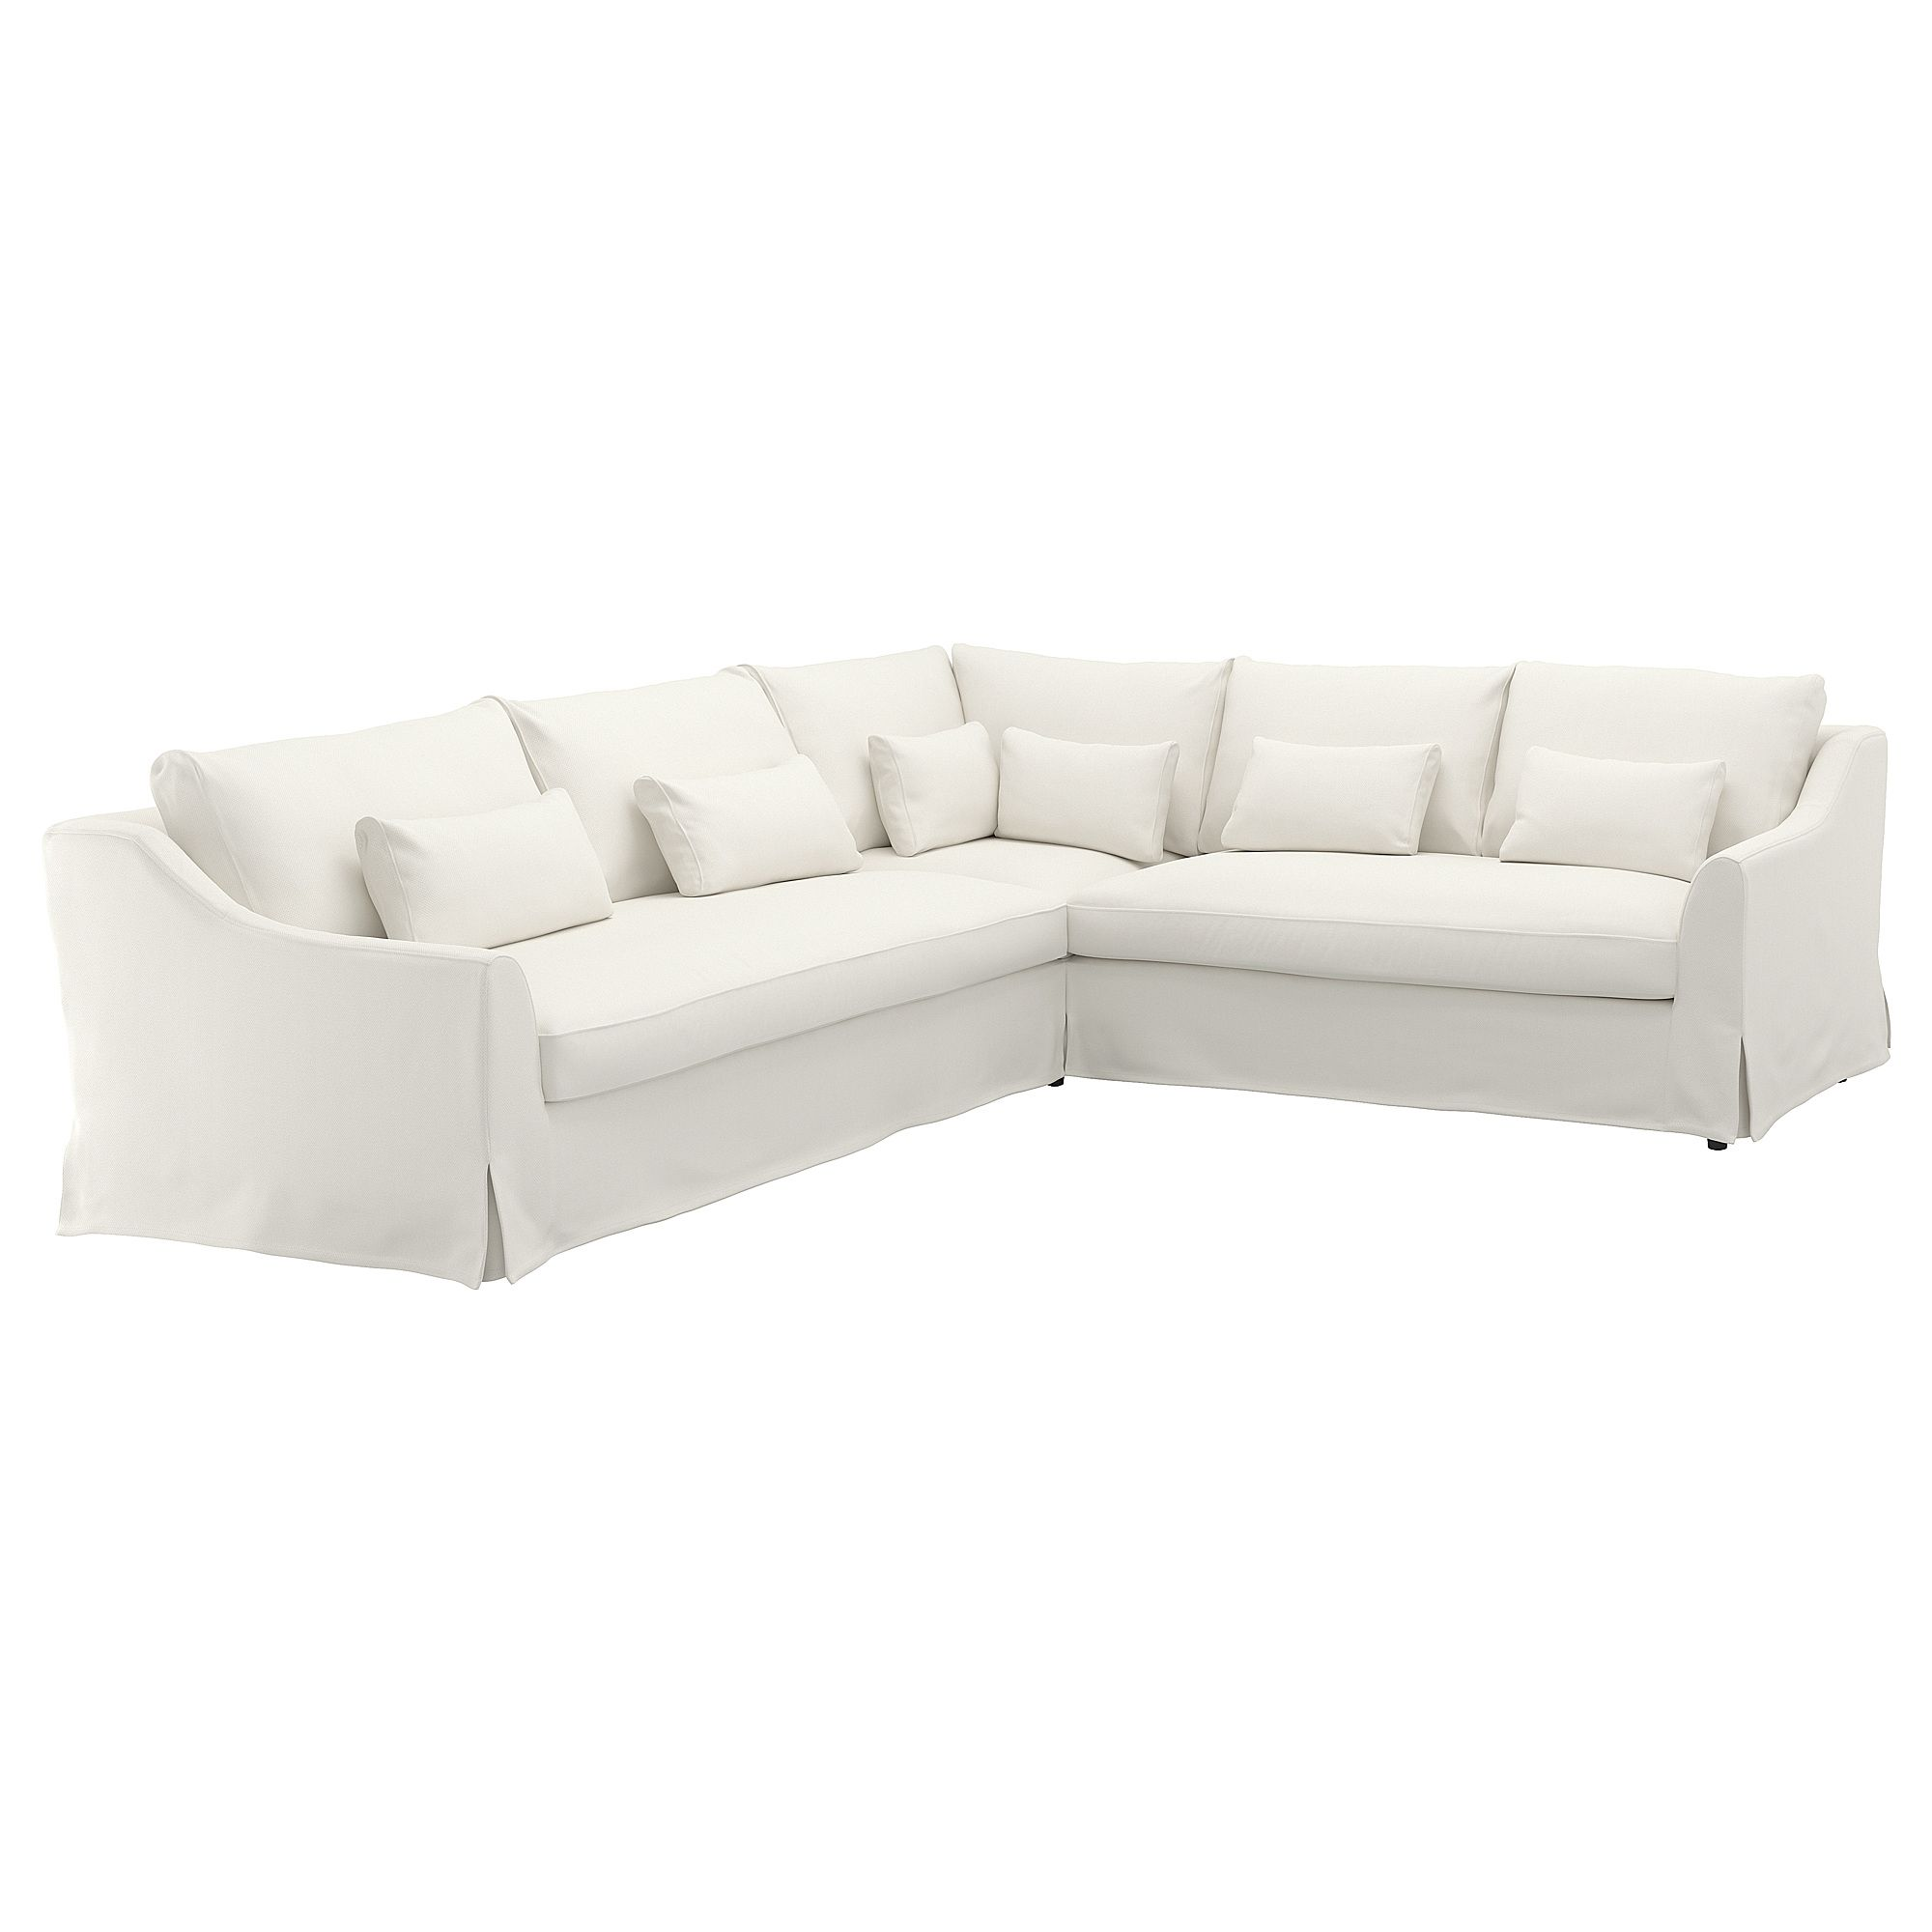 "Reviewing the New IKEA F""RL–V Sofa Series Back to Basics"